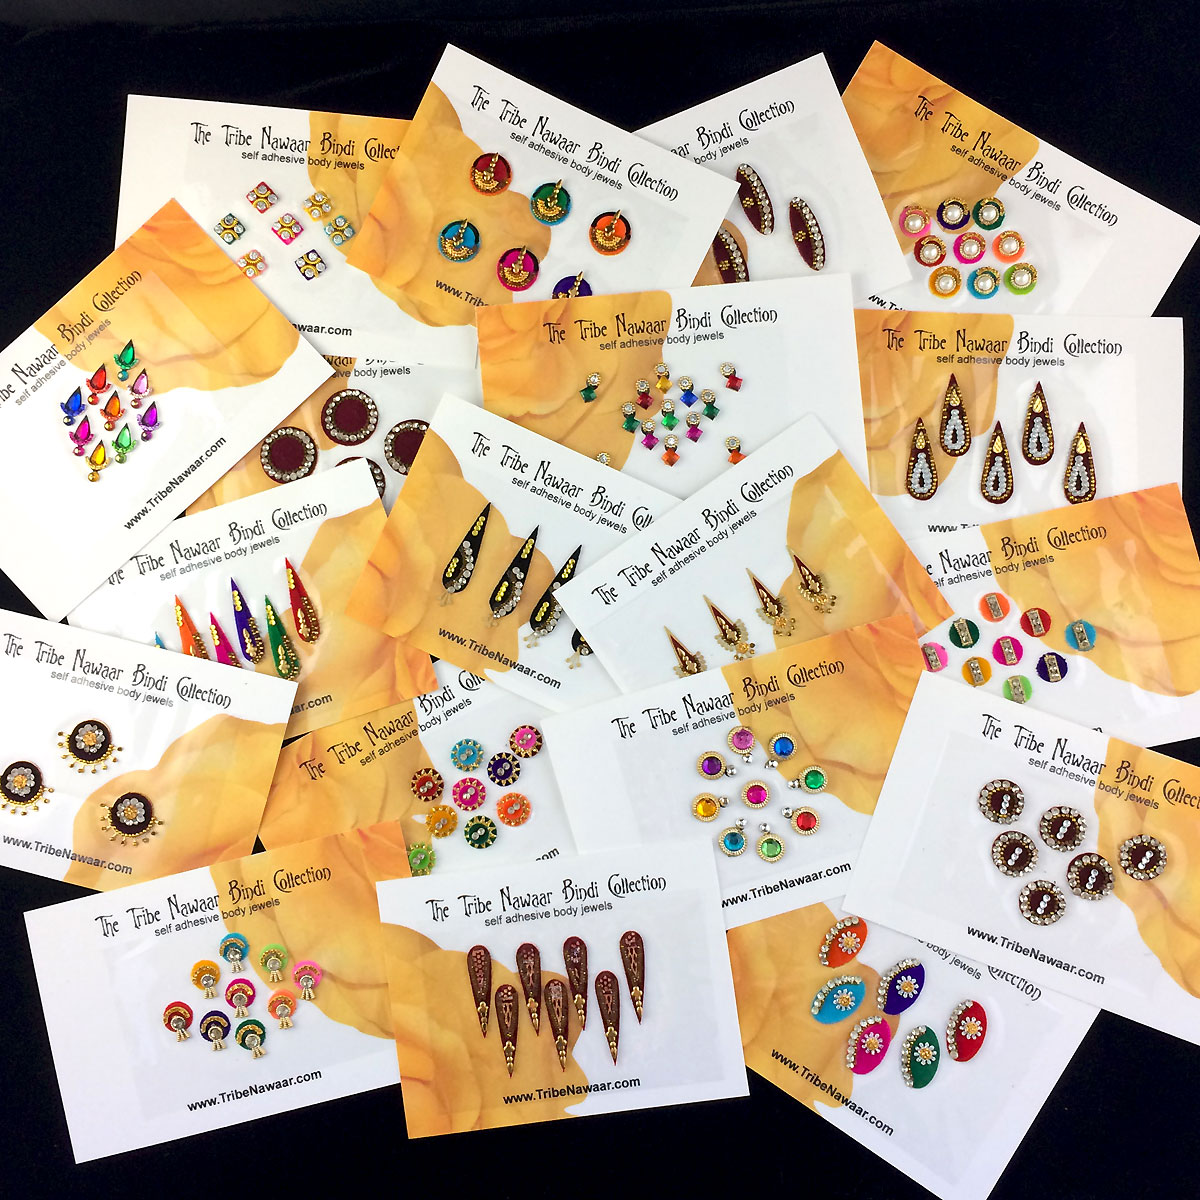 Tribe Nawaar's standard bindi pack sample of some of the variation in color, size, shape and quantity